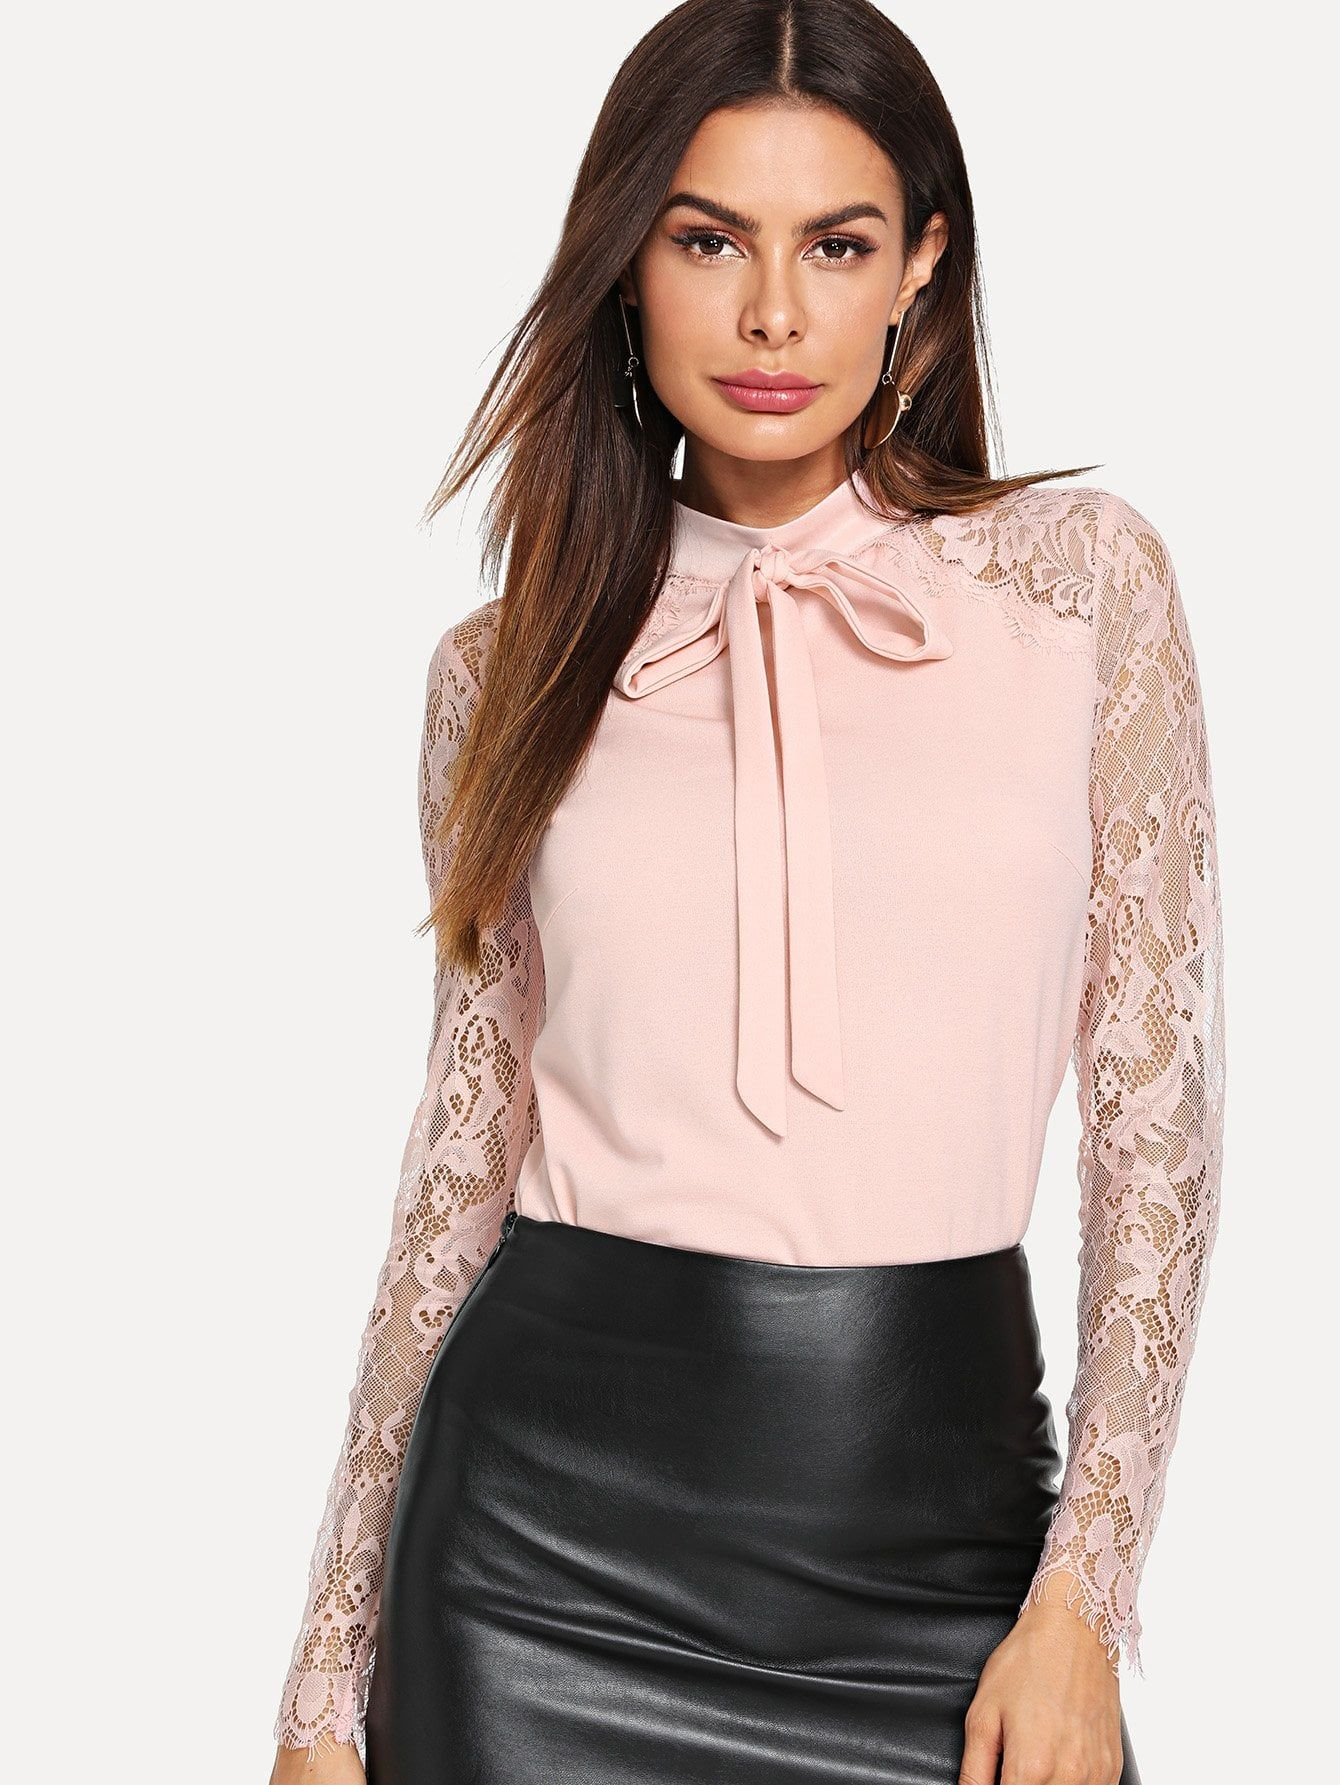 320a889add Elegant Plain Top Slim Fit Stand Collar Long Sleeve Raglan Sleeve Pink  Regular Length Tie Neck Lace Sleeve Fitted Top